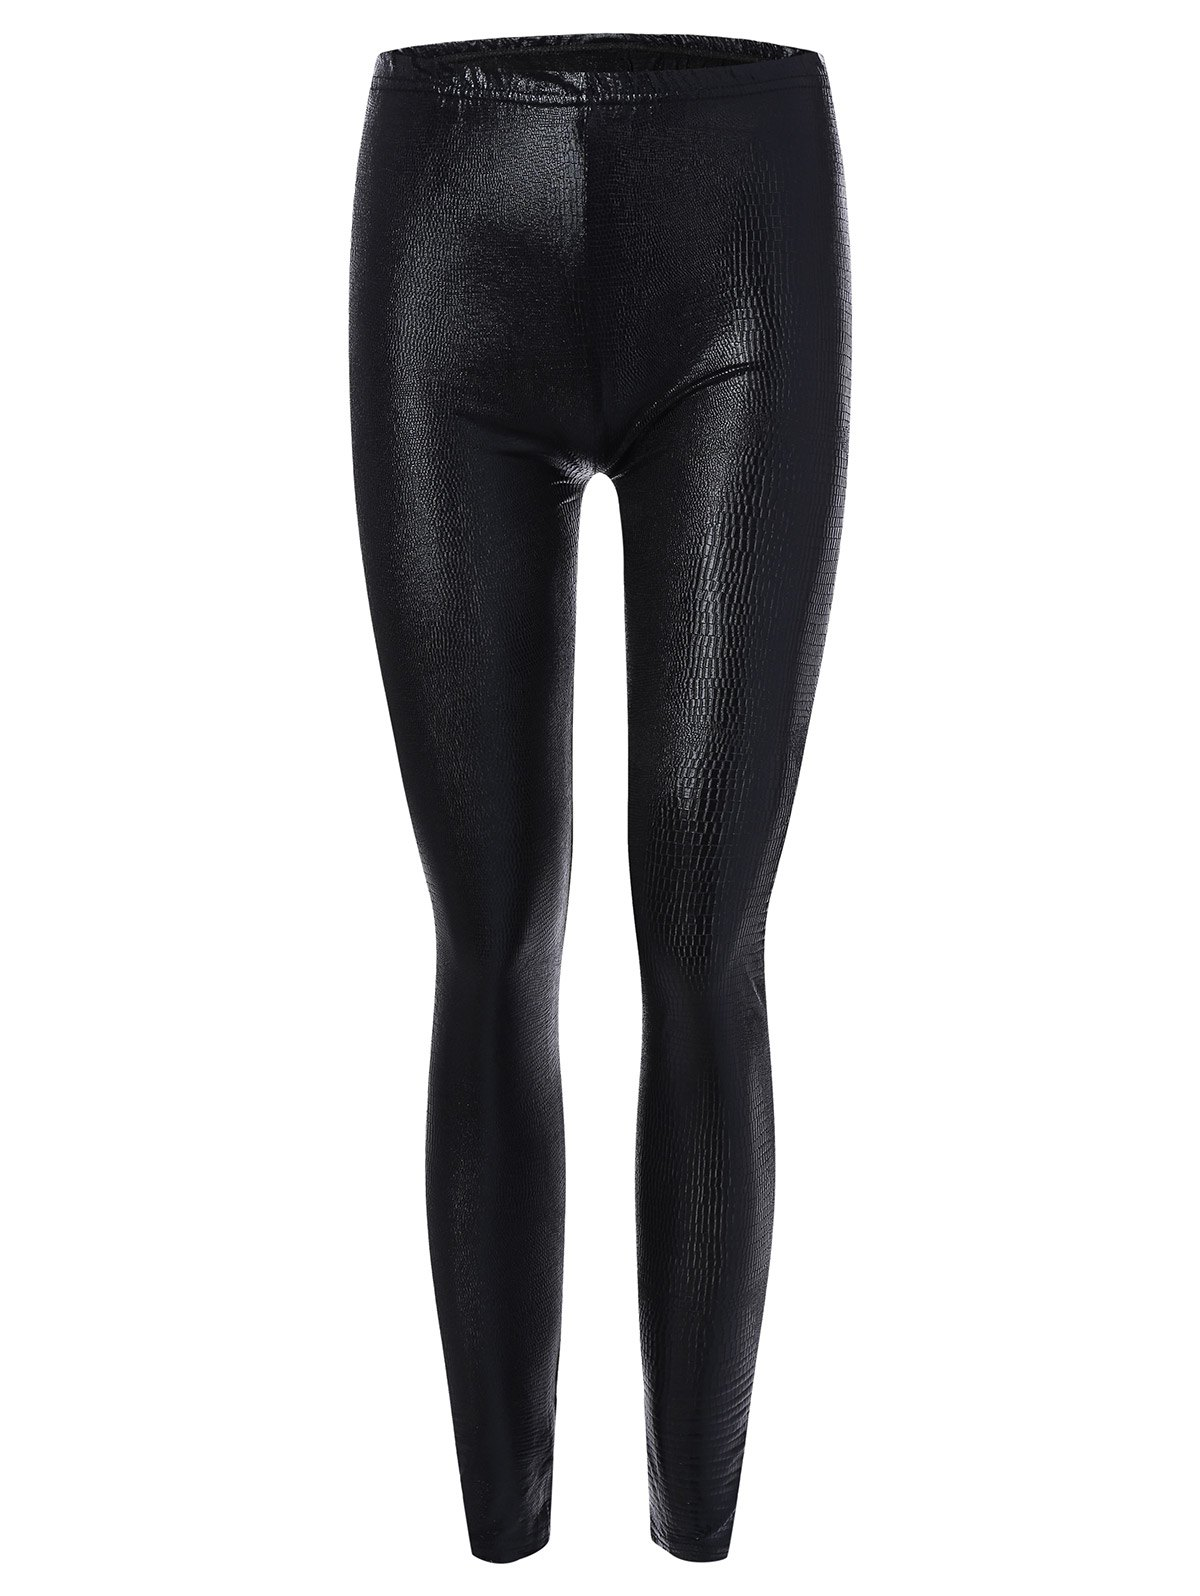 Skinny Faux Leather LeggingsWOMEN<br><br>Size: S; Color: BLACK; Style: Fashion; Material: Polyester; Waist Type: High; Pattern Type: Others; Weight: 0.250kg; Package Contents: 1 x Leggings;